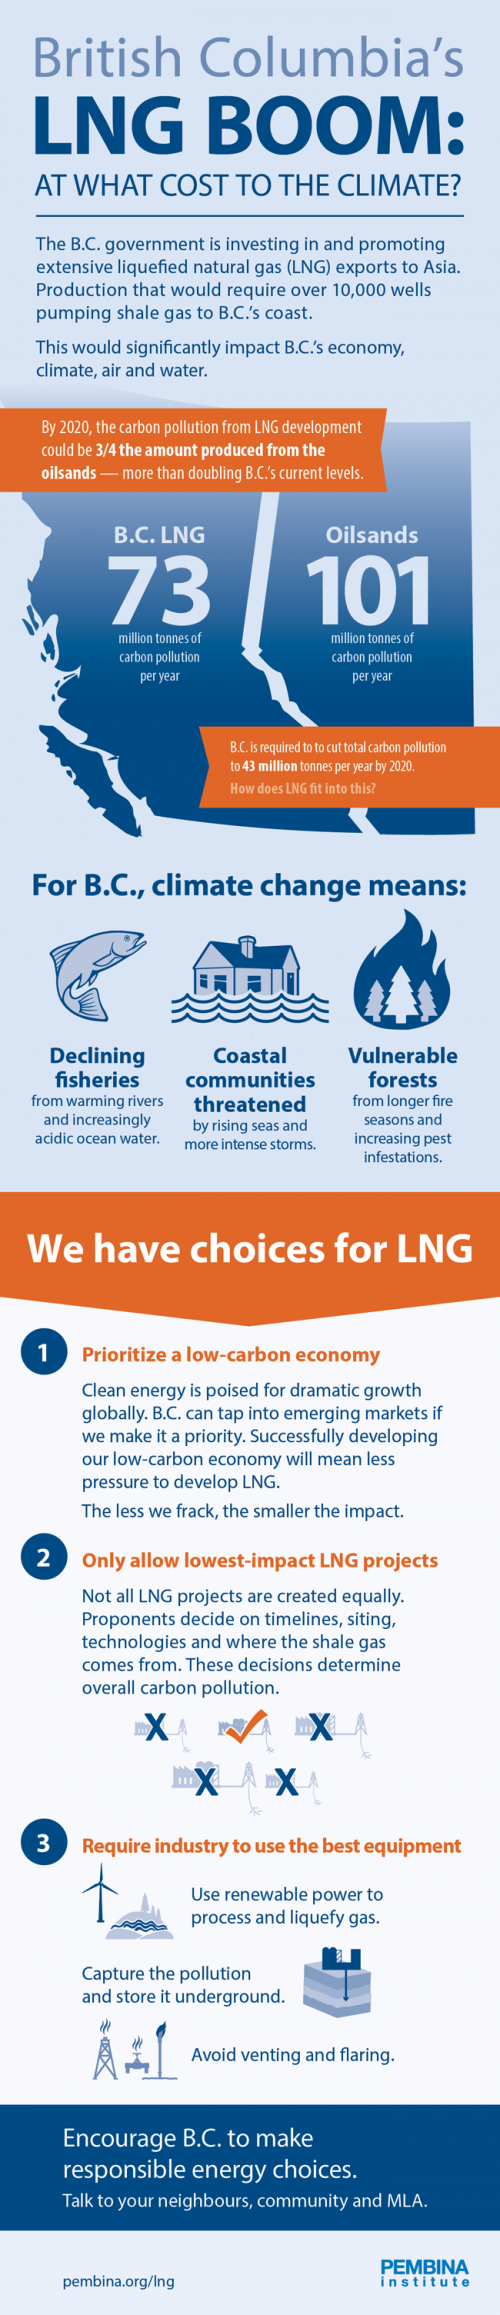 B.C. LNG emissions scale infographic